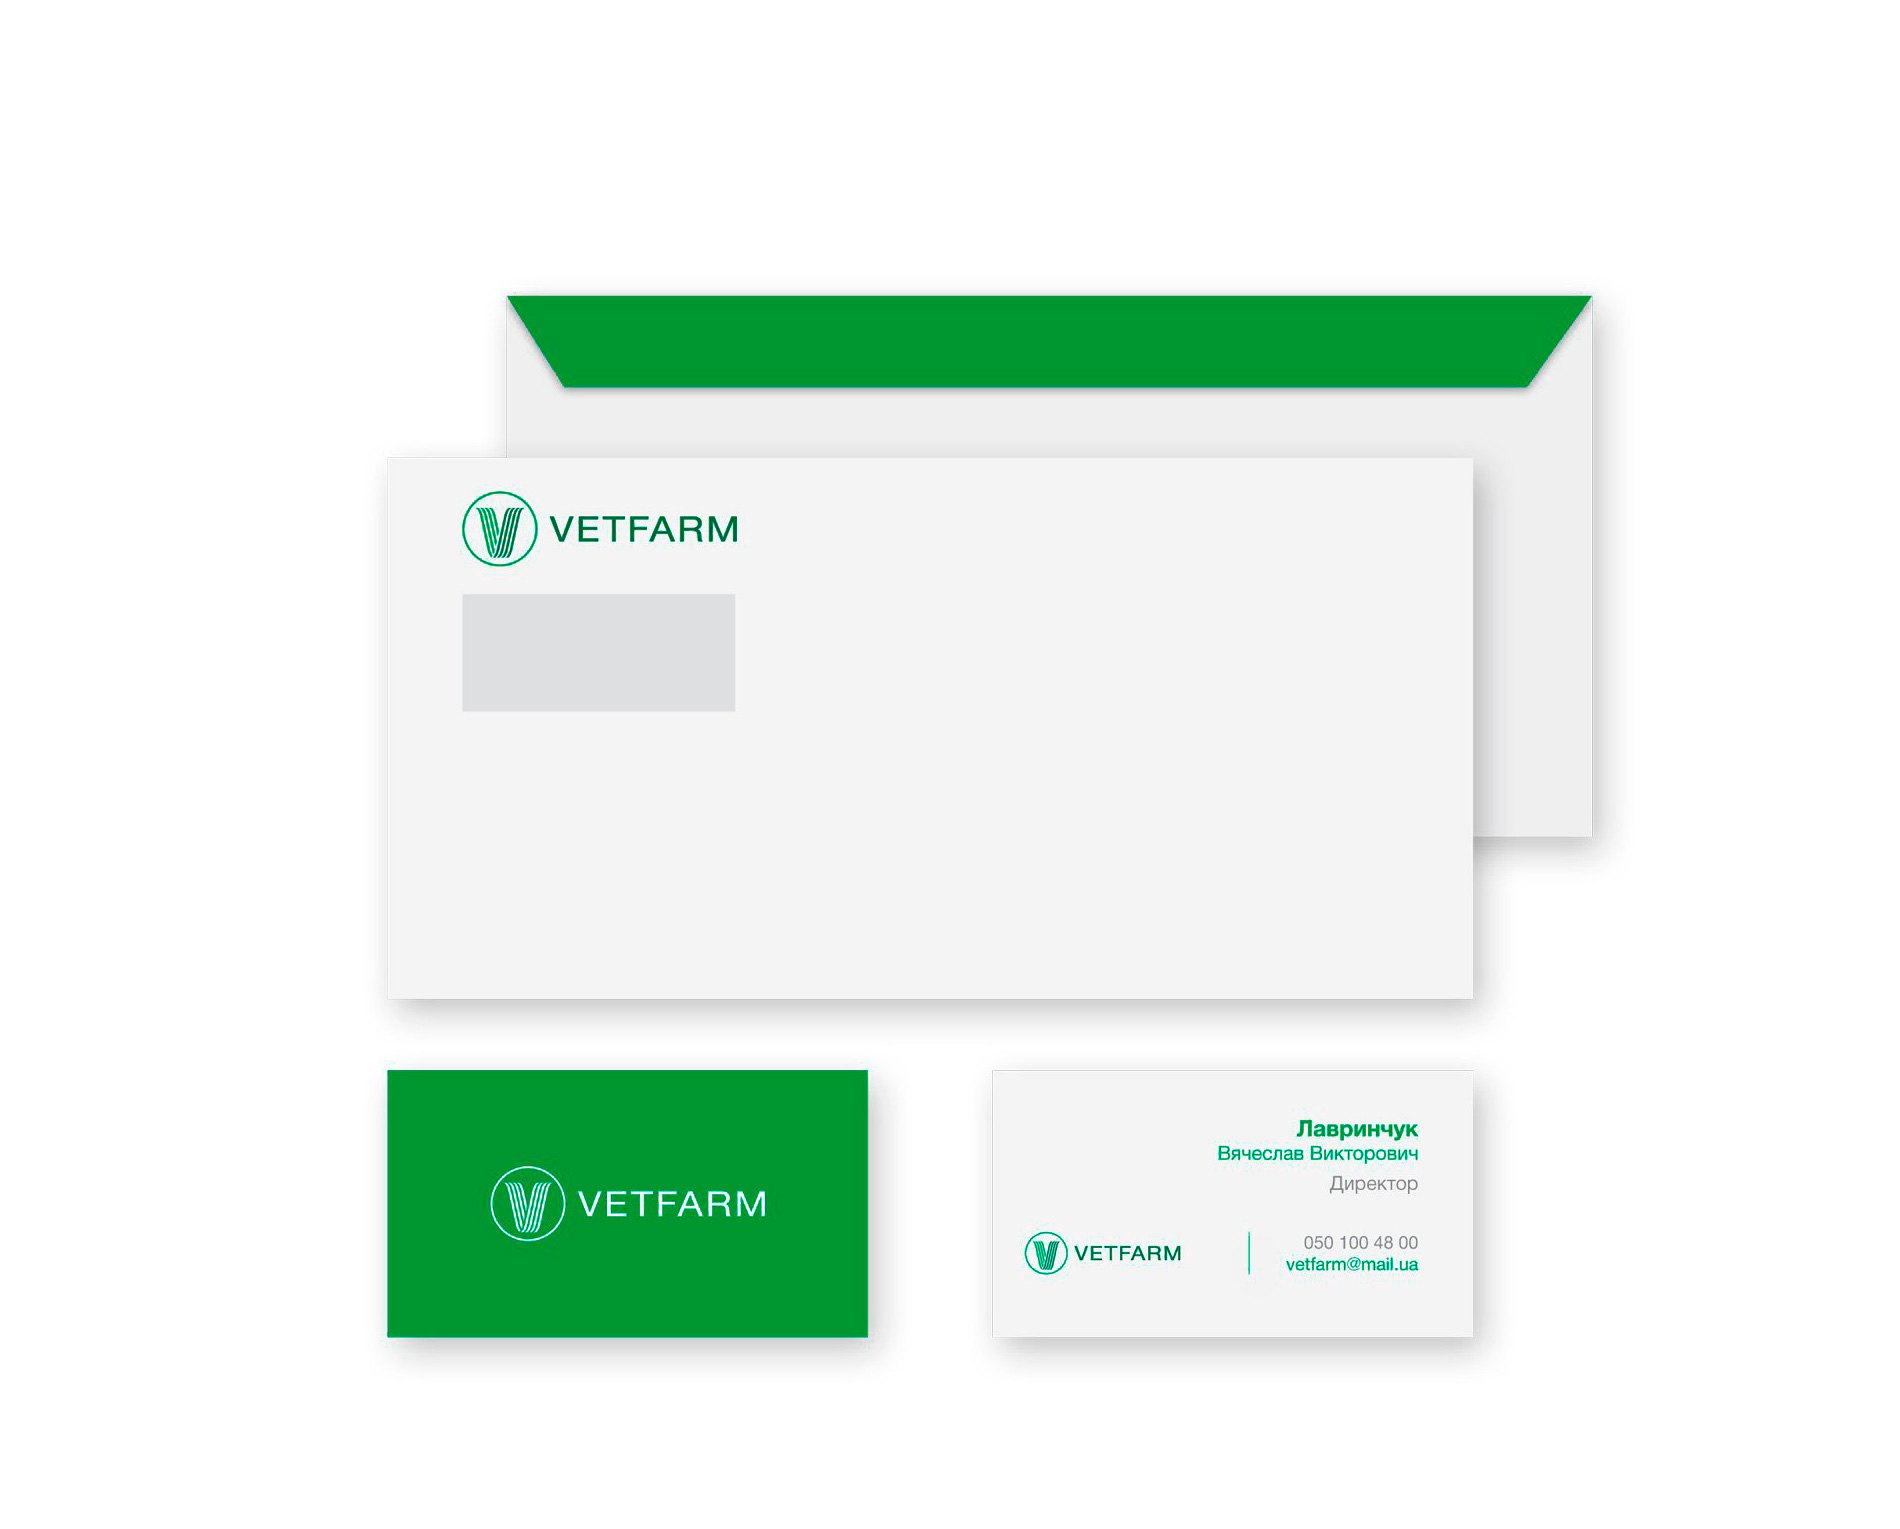 Logo design for Vetfarm company – manufacture, import and distribution of veterinary products portfolio